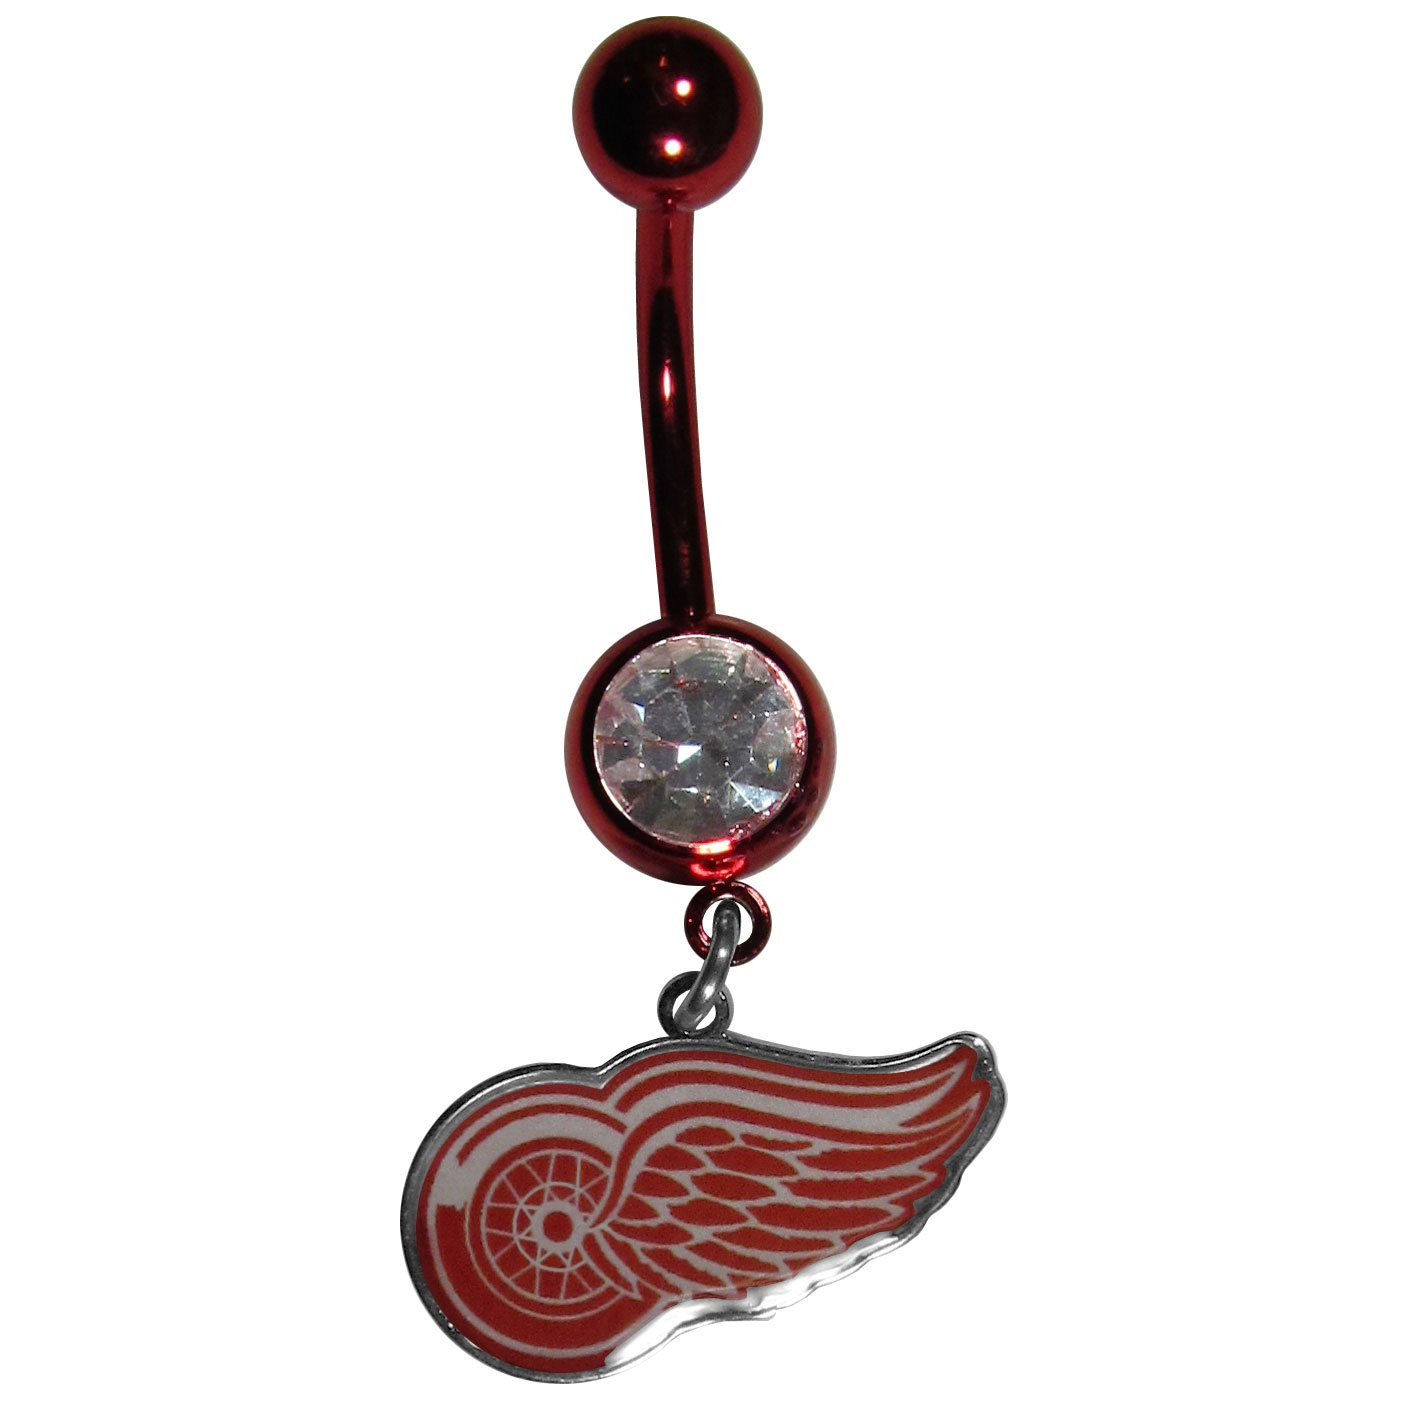 Detroit Red Wings® Navel Ring - Let the world know you're a fan with our officially licensed Detroit Red Wings® belly ring in vibrant team colors with a large, team colored crystal. The 14 gauge navel ring is 316L Surgical Stainless steel has a team dangle charm.